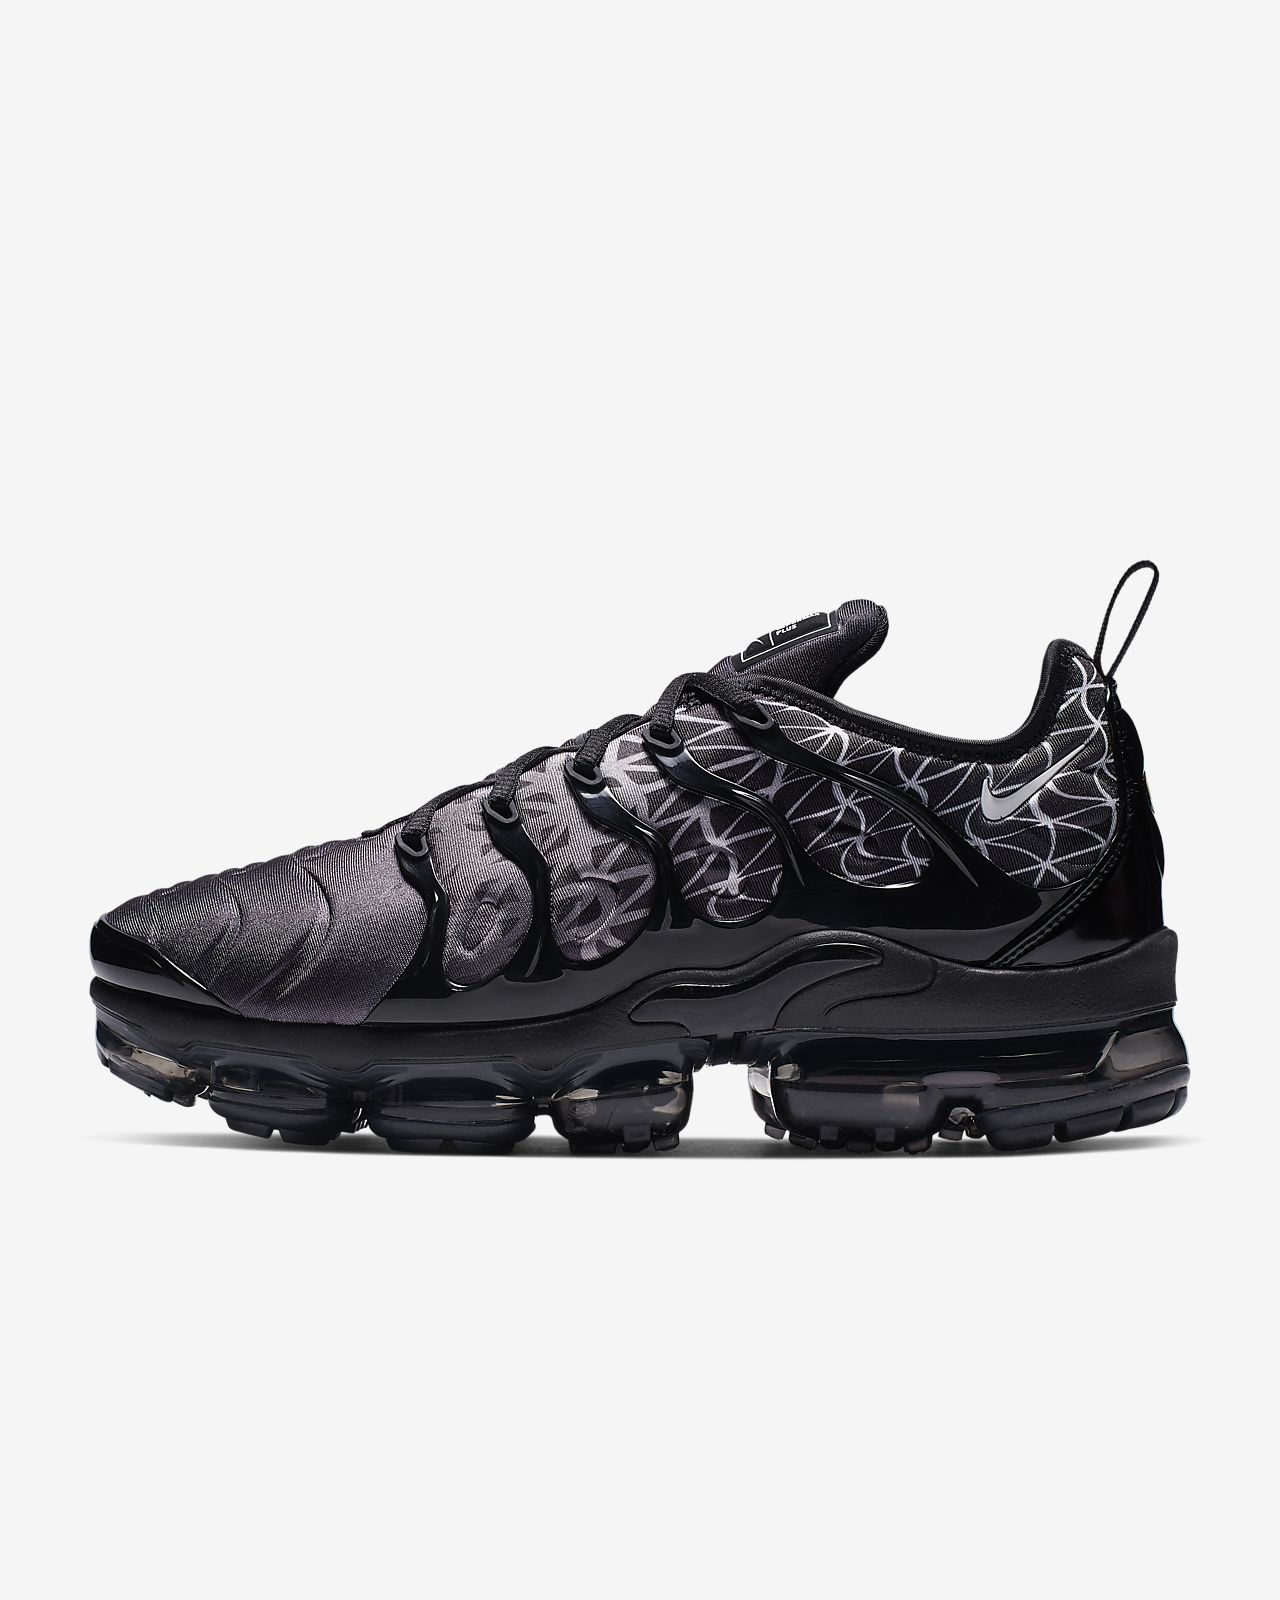 sneakers for cheap 1fce7 c7ab6 ... Chaussure Nike Air VaporMax Plus pour Homme